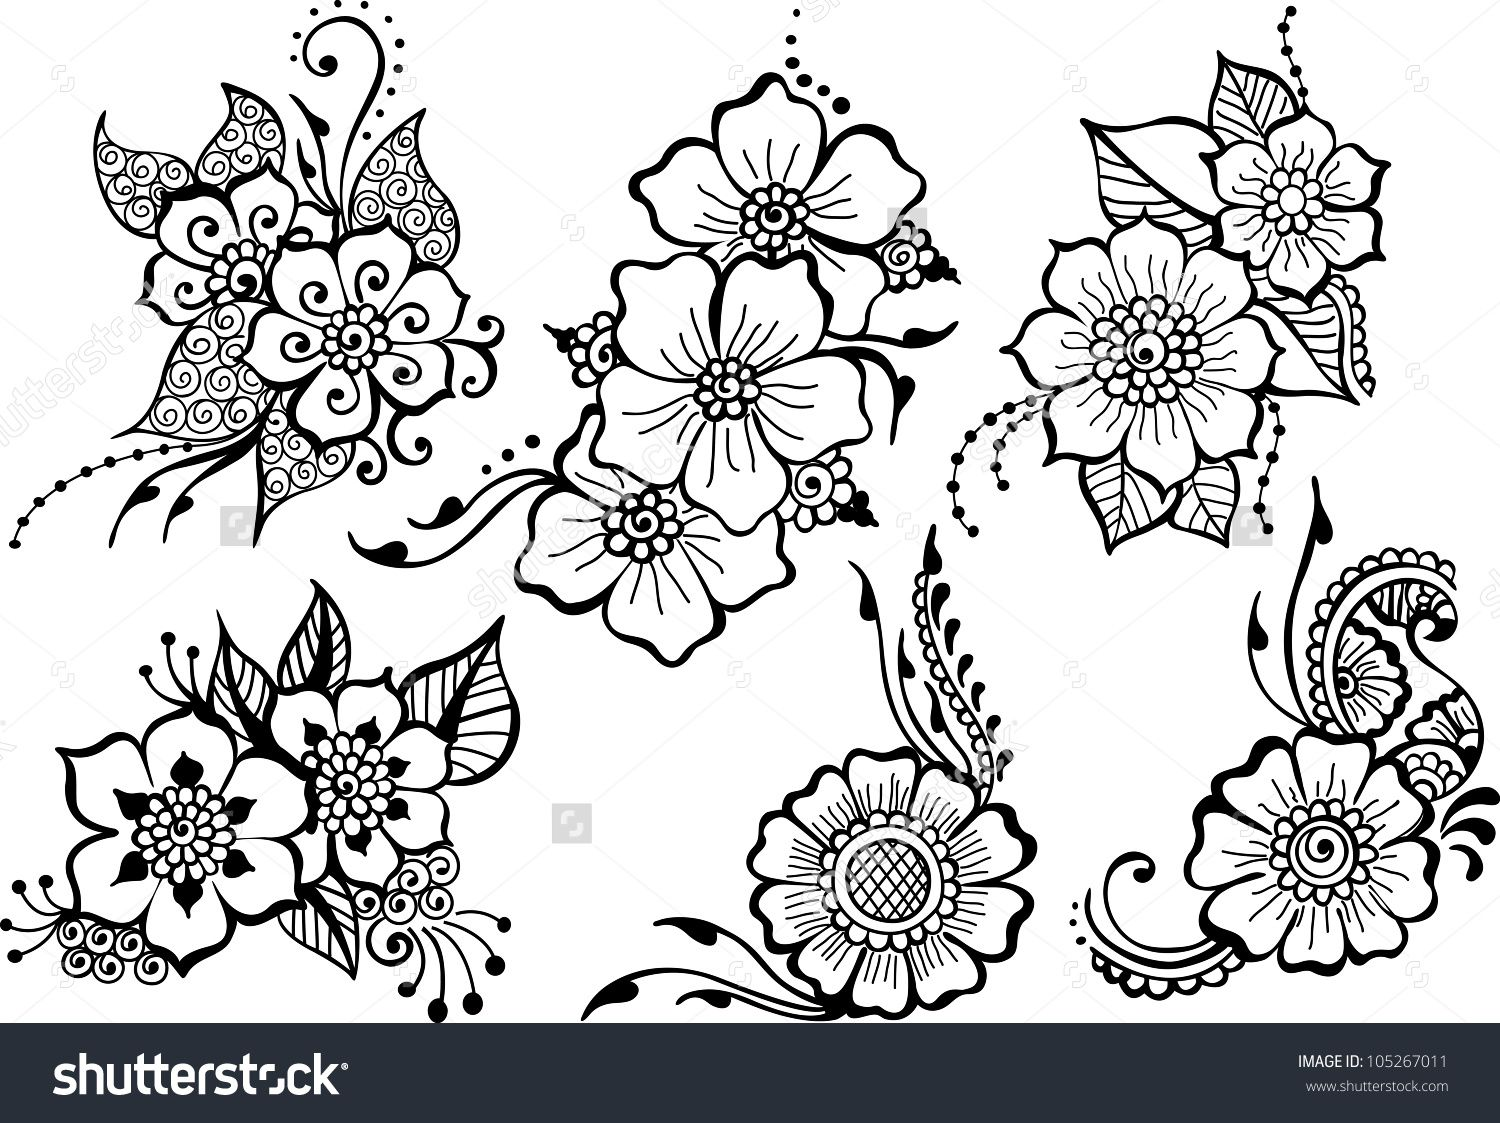 Set Of Six Black Vector Flowers Lace Flower Tattoos Flower Line